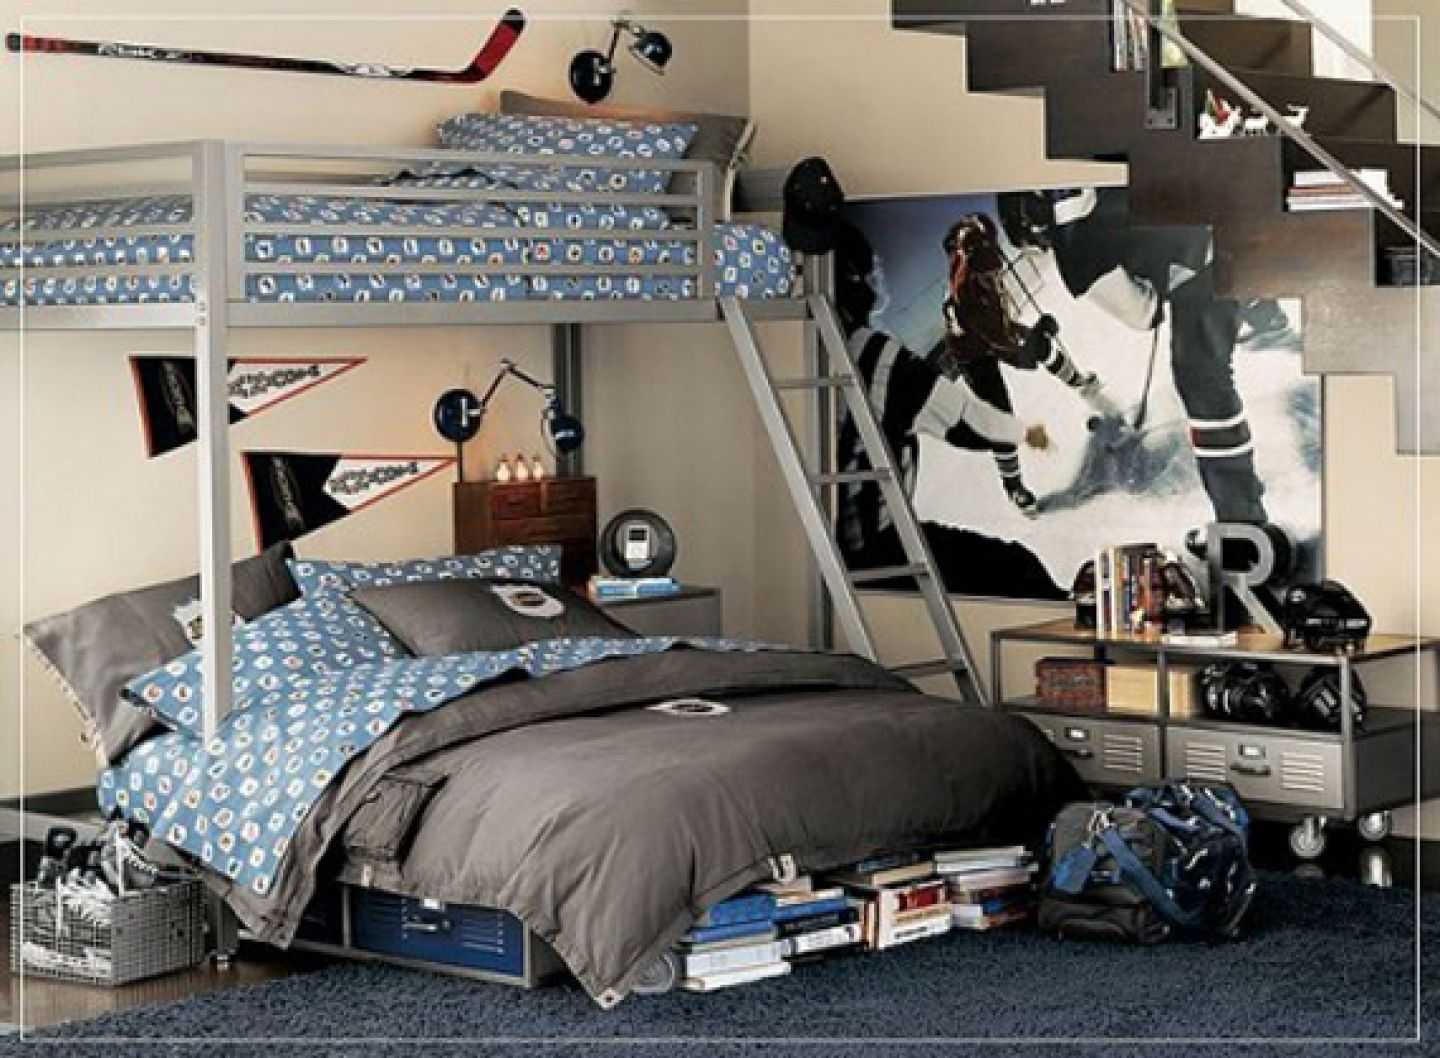 Attirant Amusing Design Of The Black Rugs Ideas With White Wall And Blue Bed As The  Room